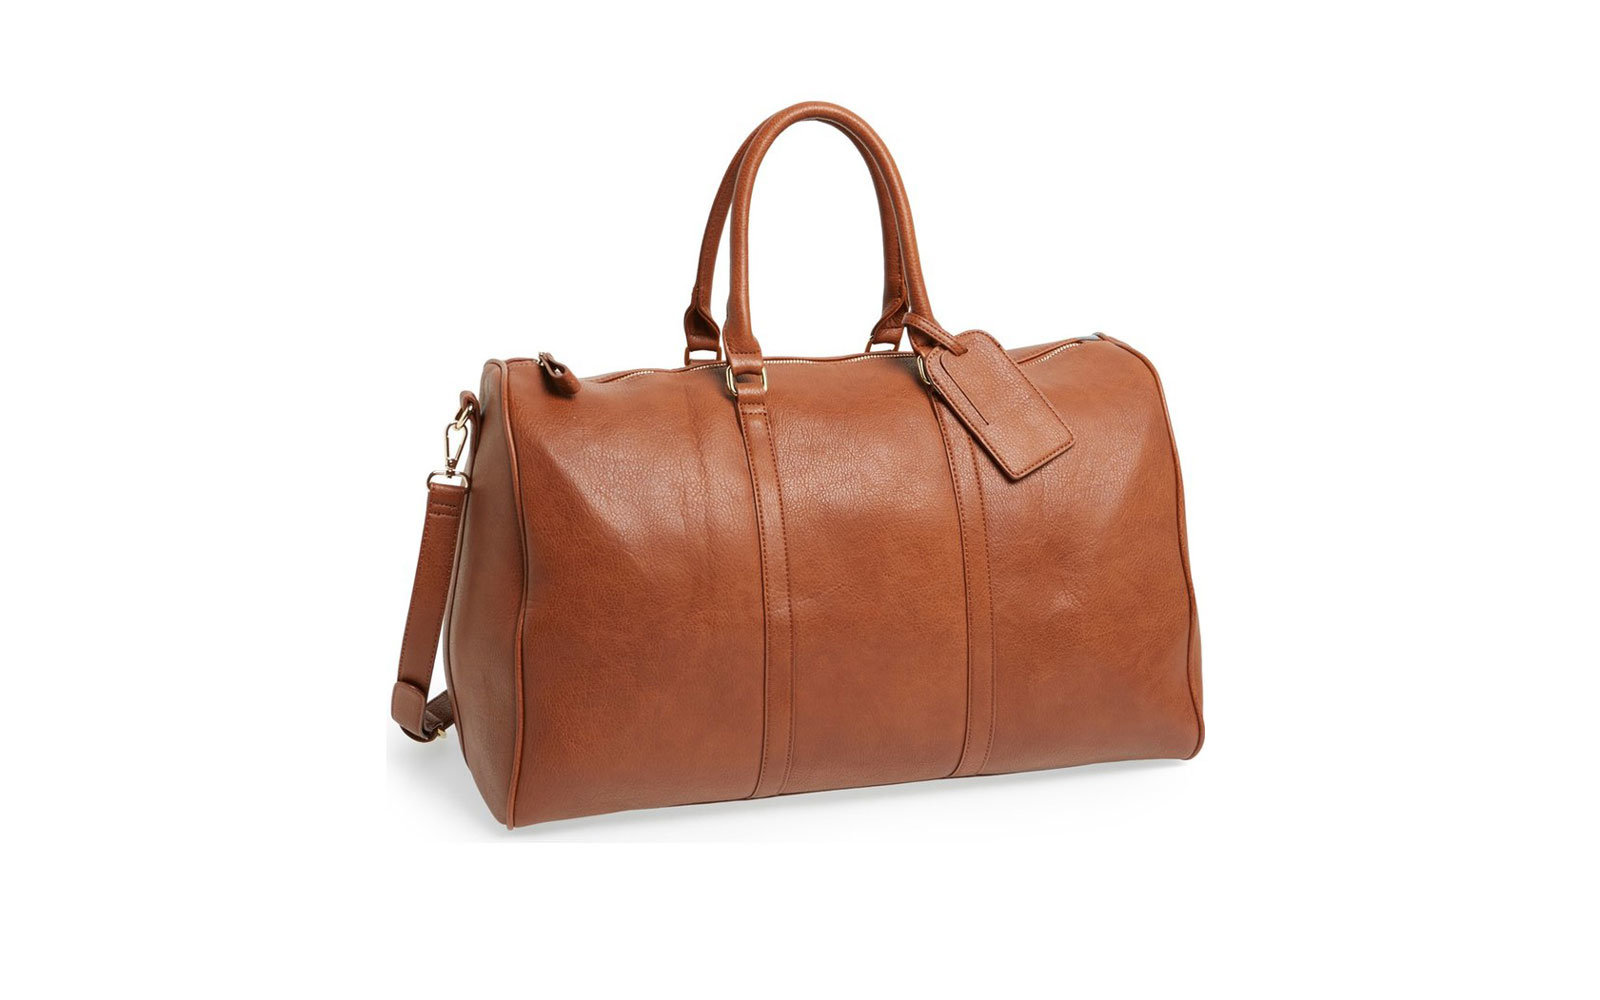 e3edf0e9ffe1 Sole Society Lacie Faux Leather Duffel Bag